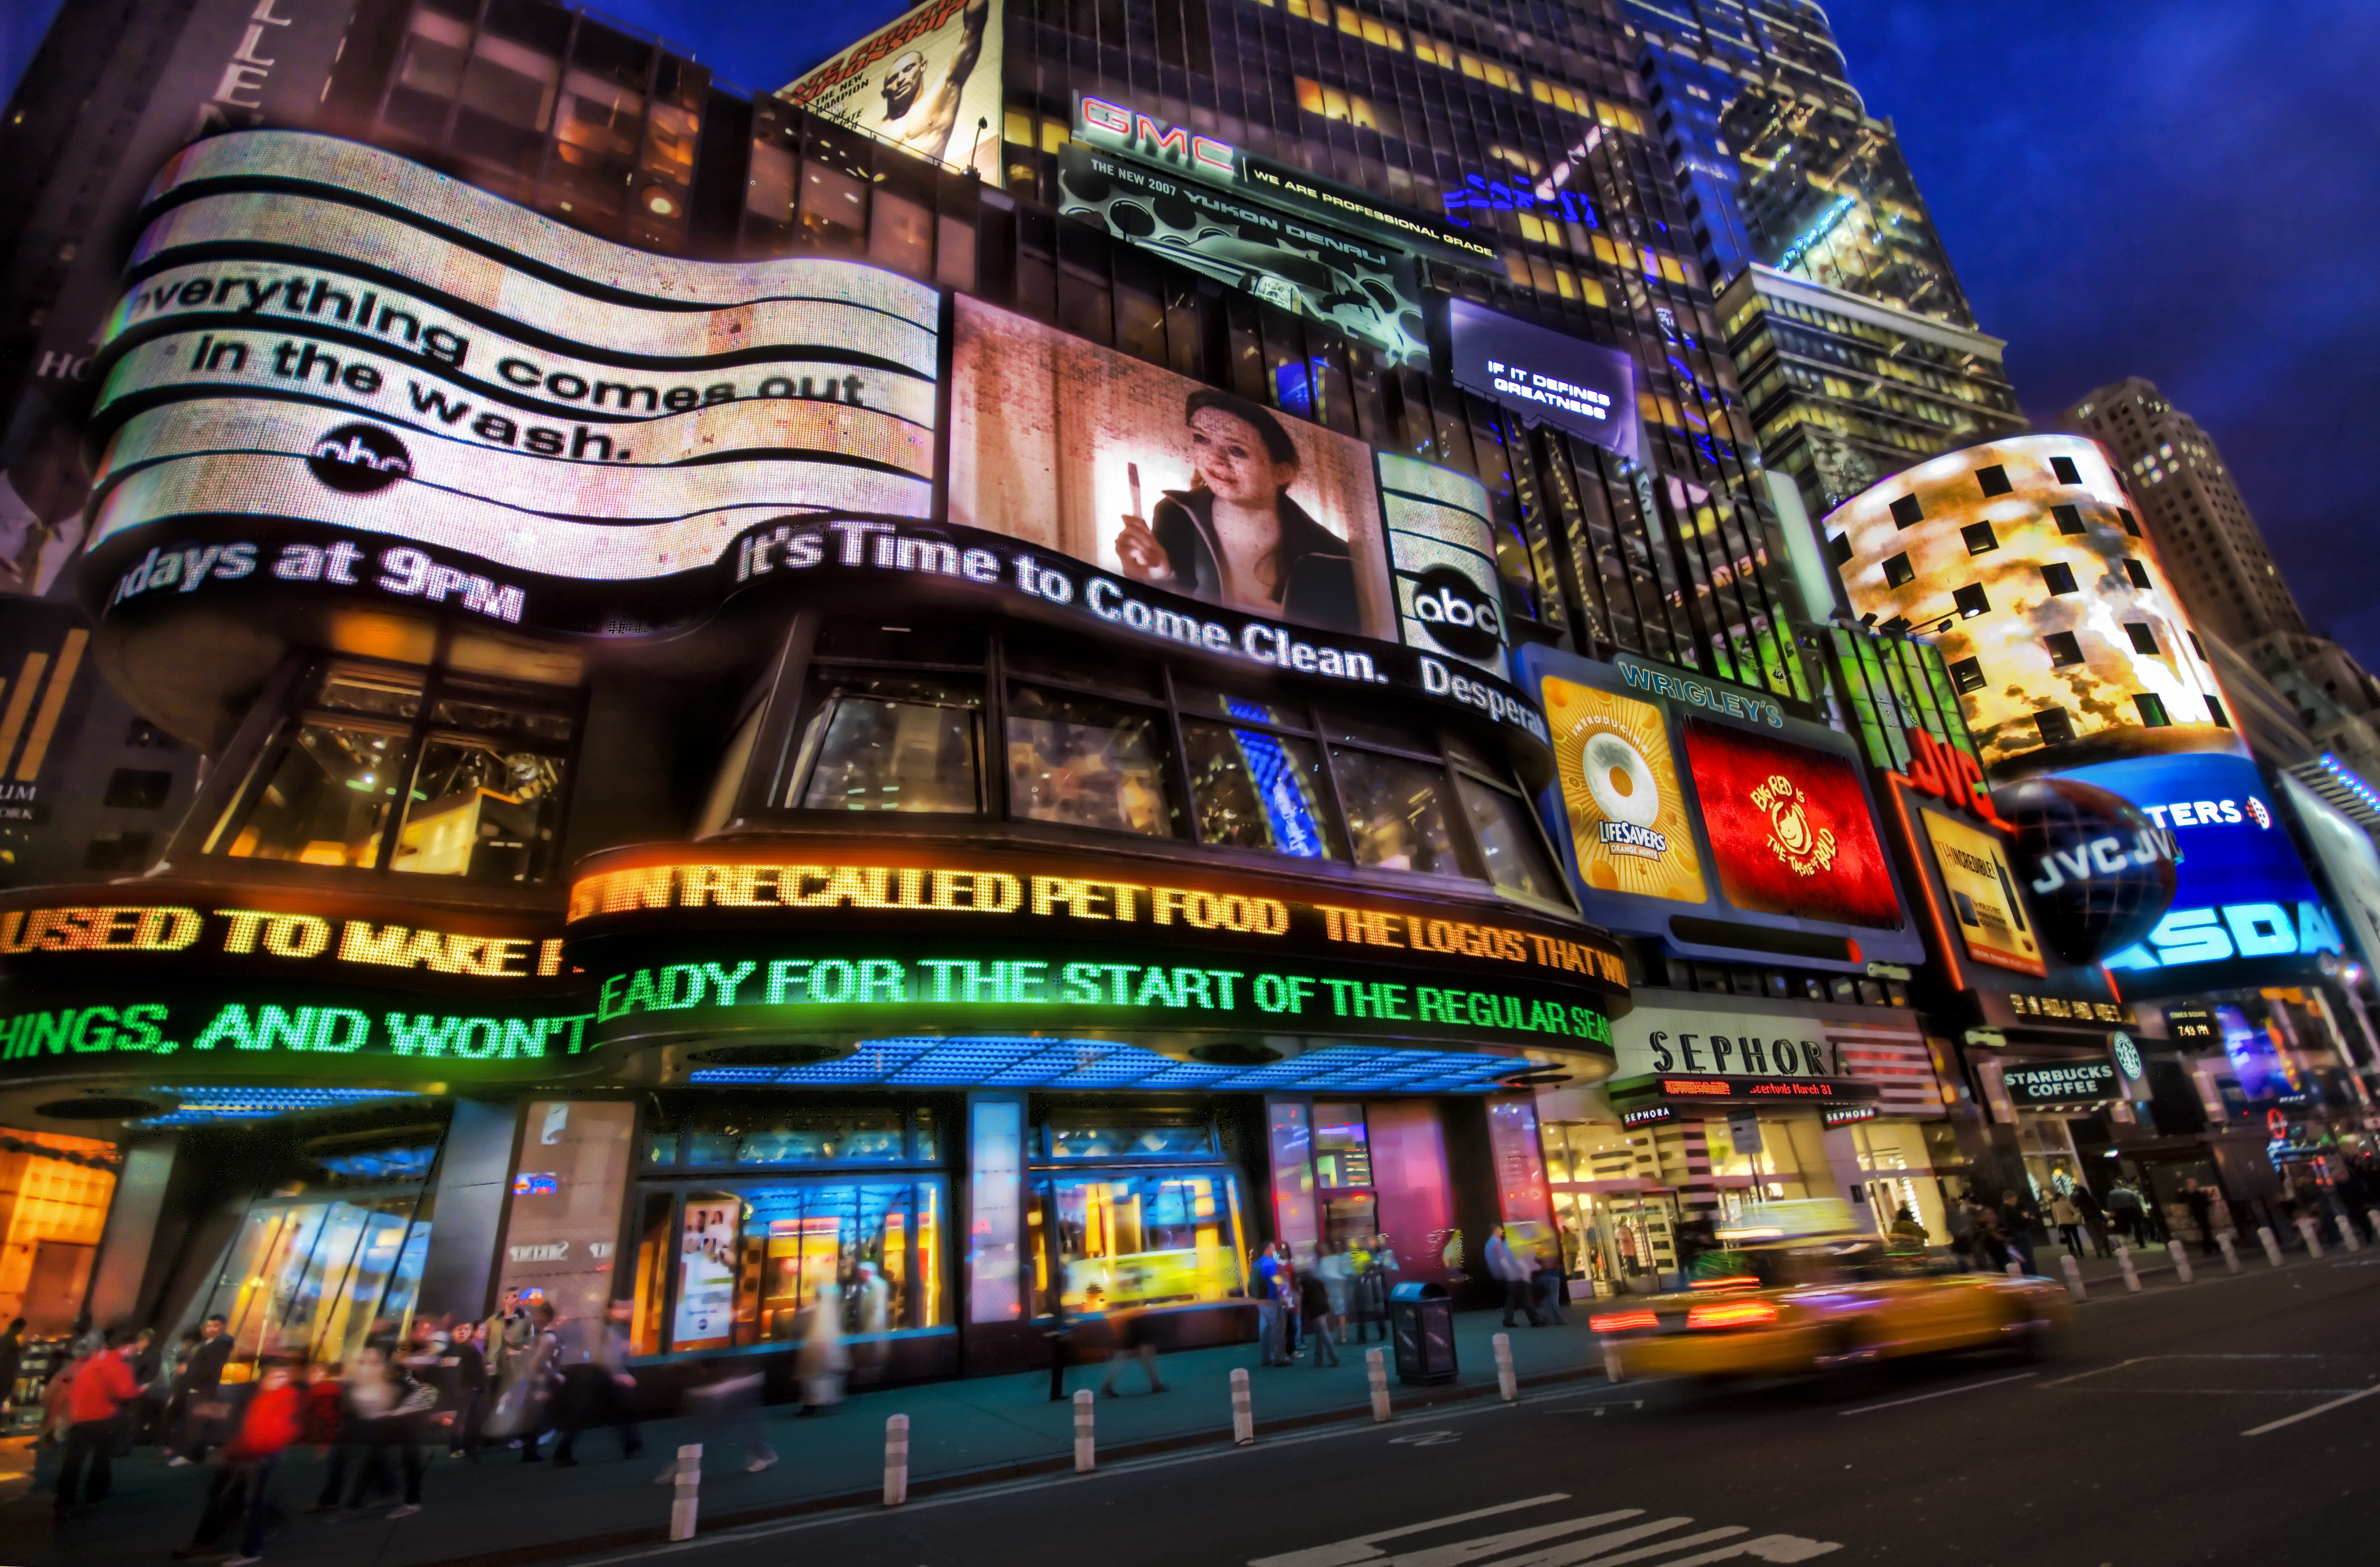 Crédit: Trey Ratcliff An Electric Night in Times Square - Flickr, Creative Commons